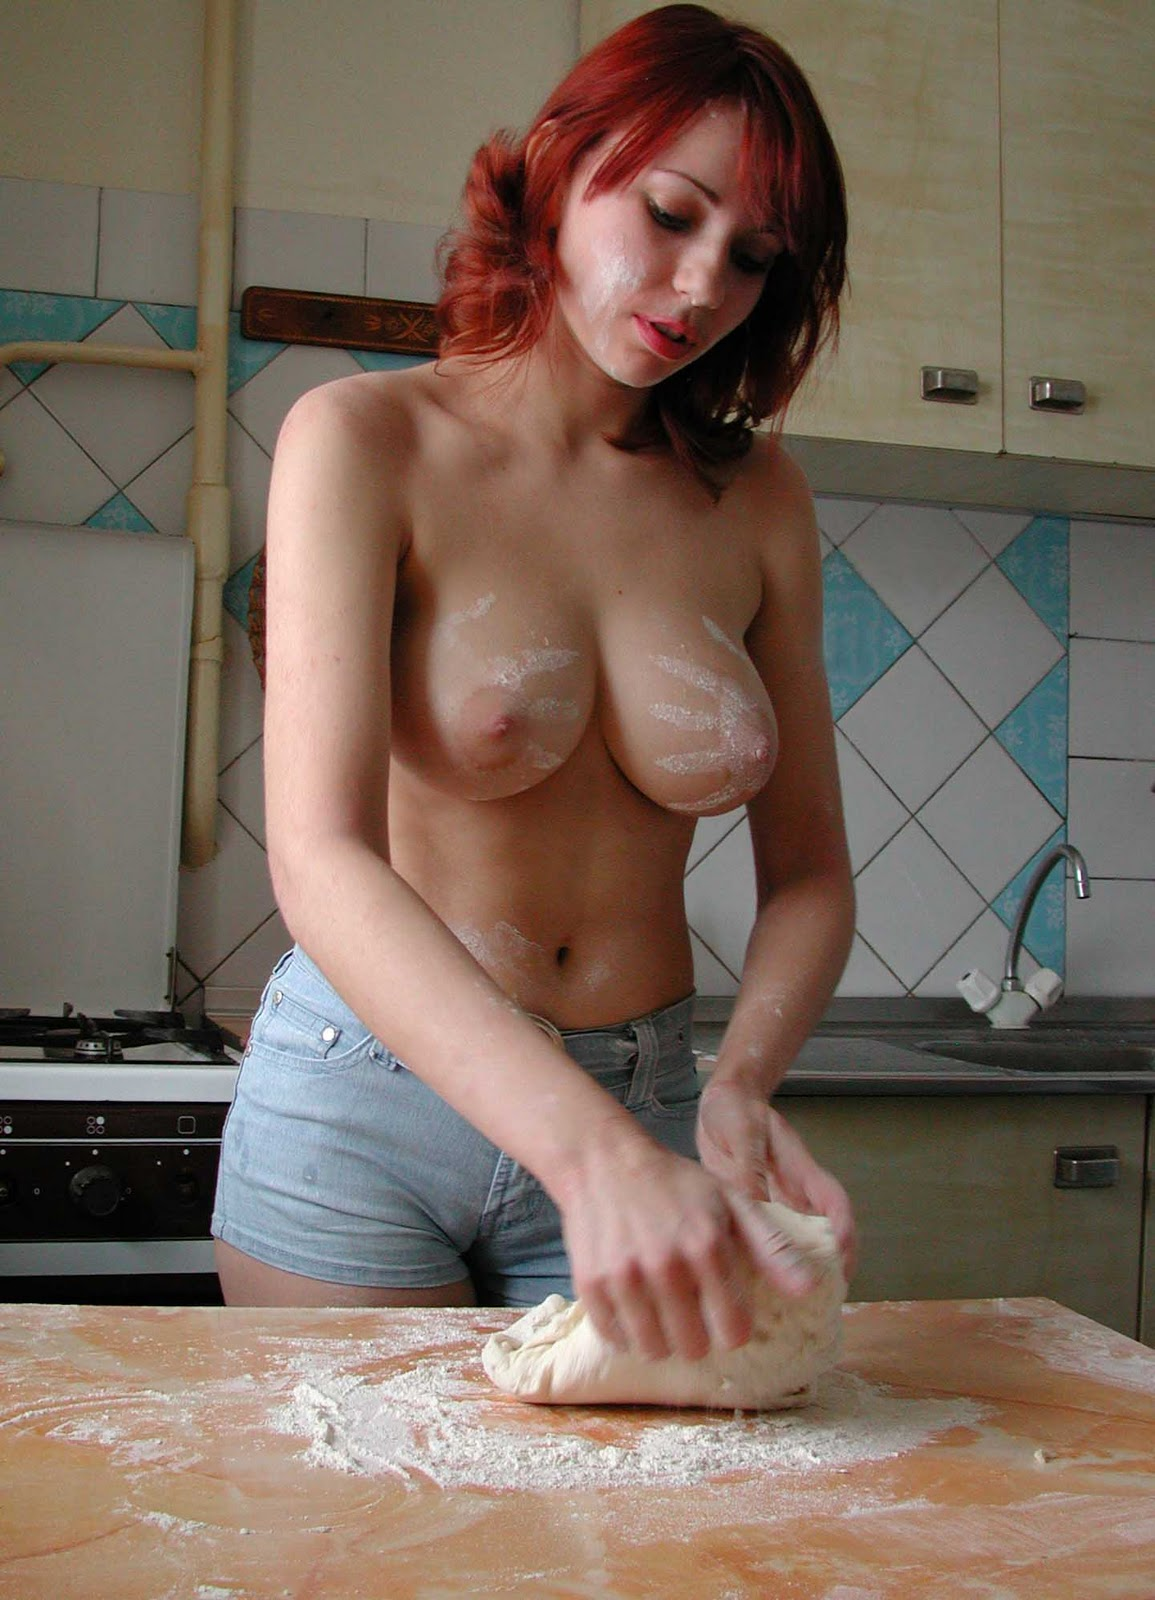 Topless Cooking Video